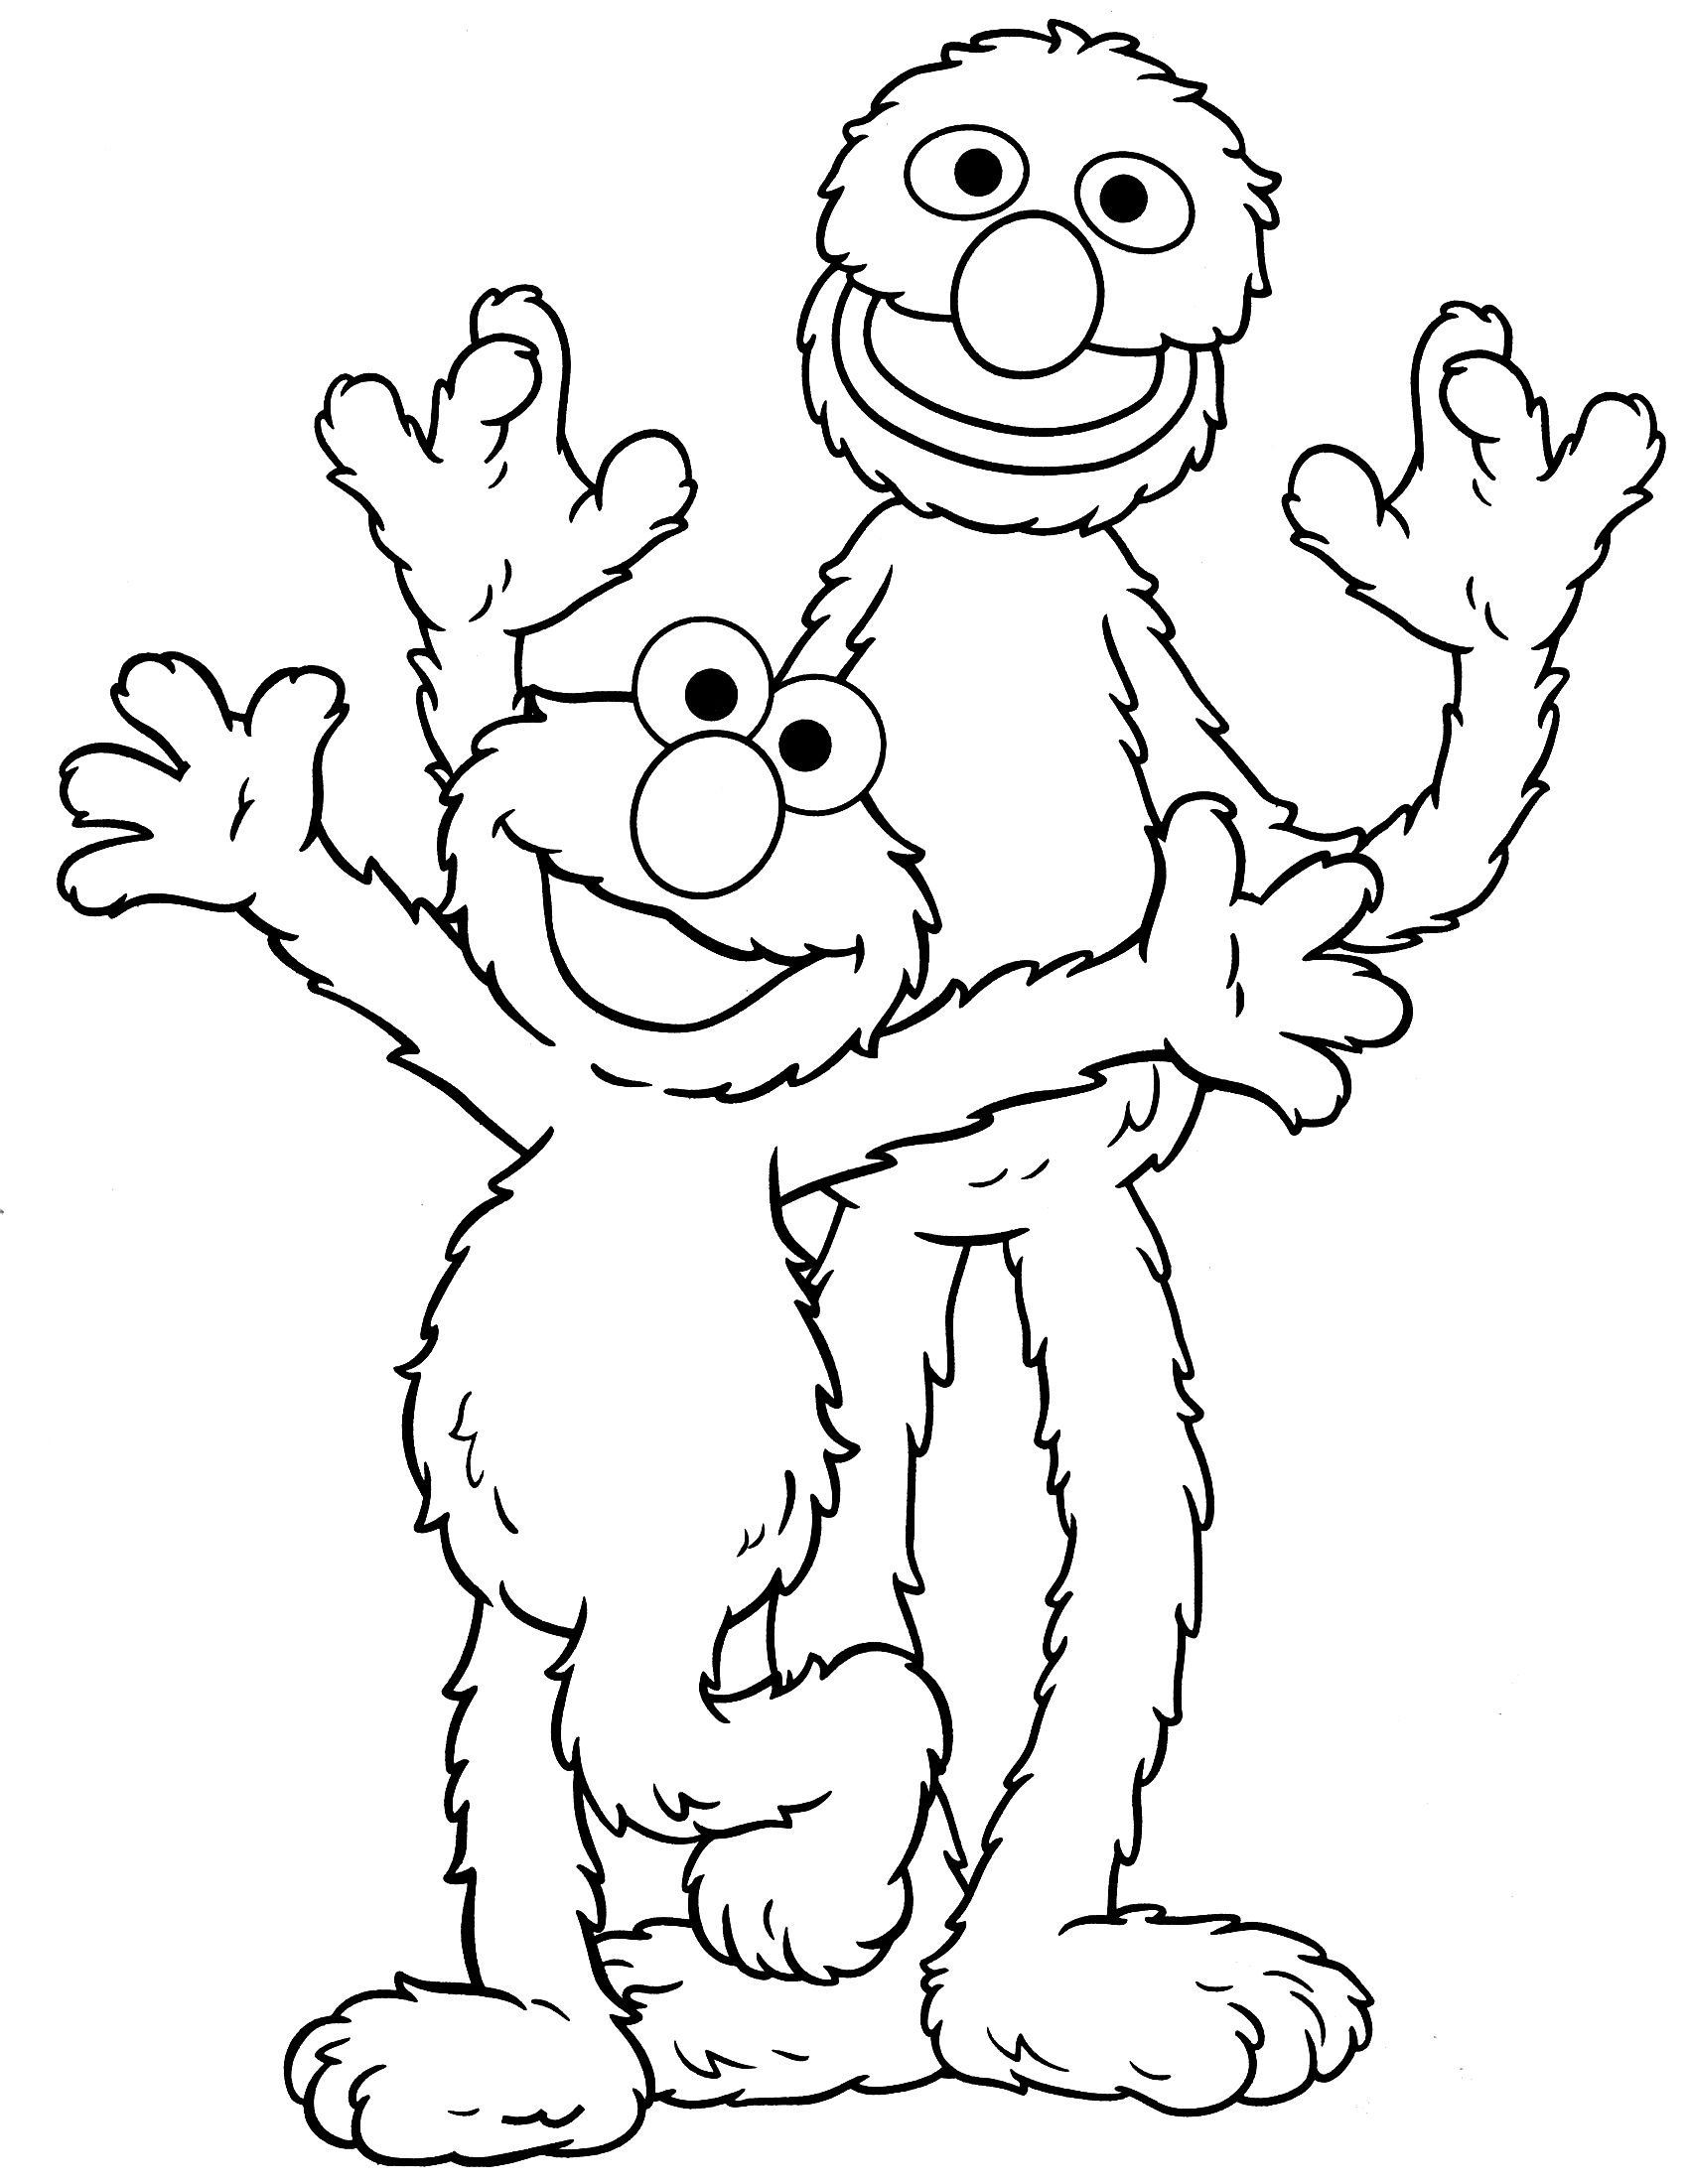 Free coloring pages elmo - Sesame Street Coloring Pages Bert Free Printable Coloring Pages